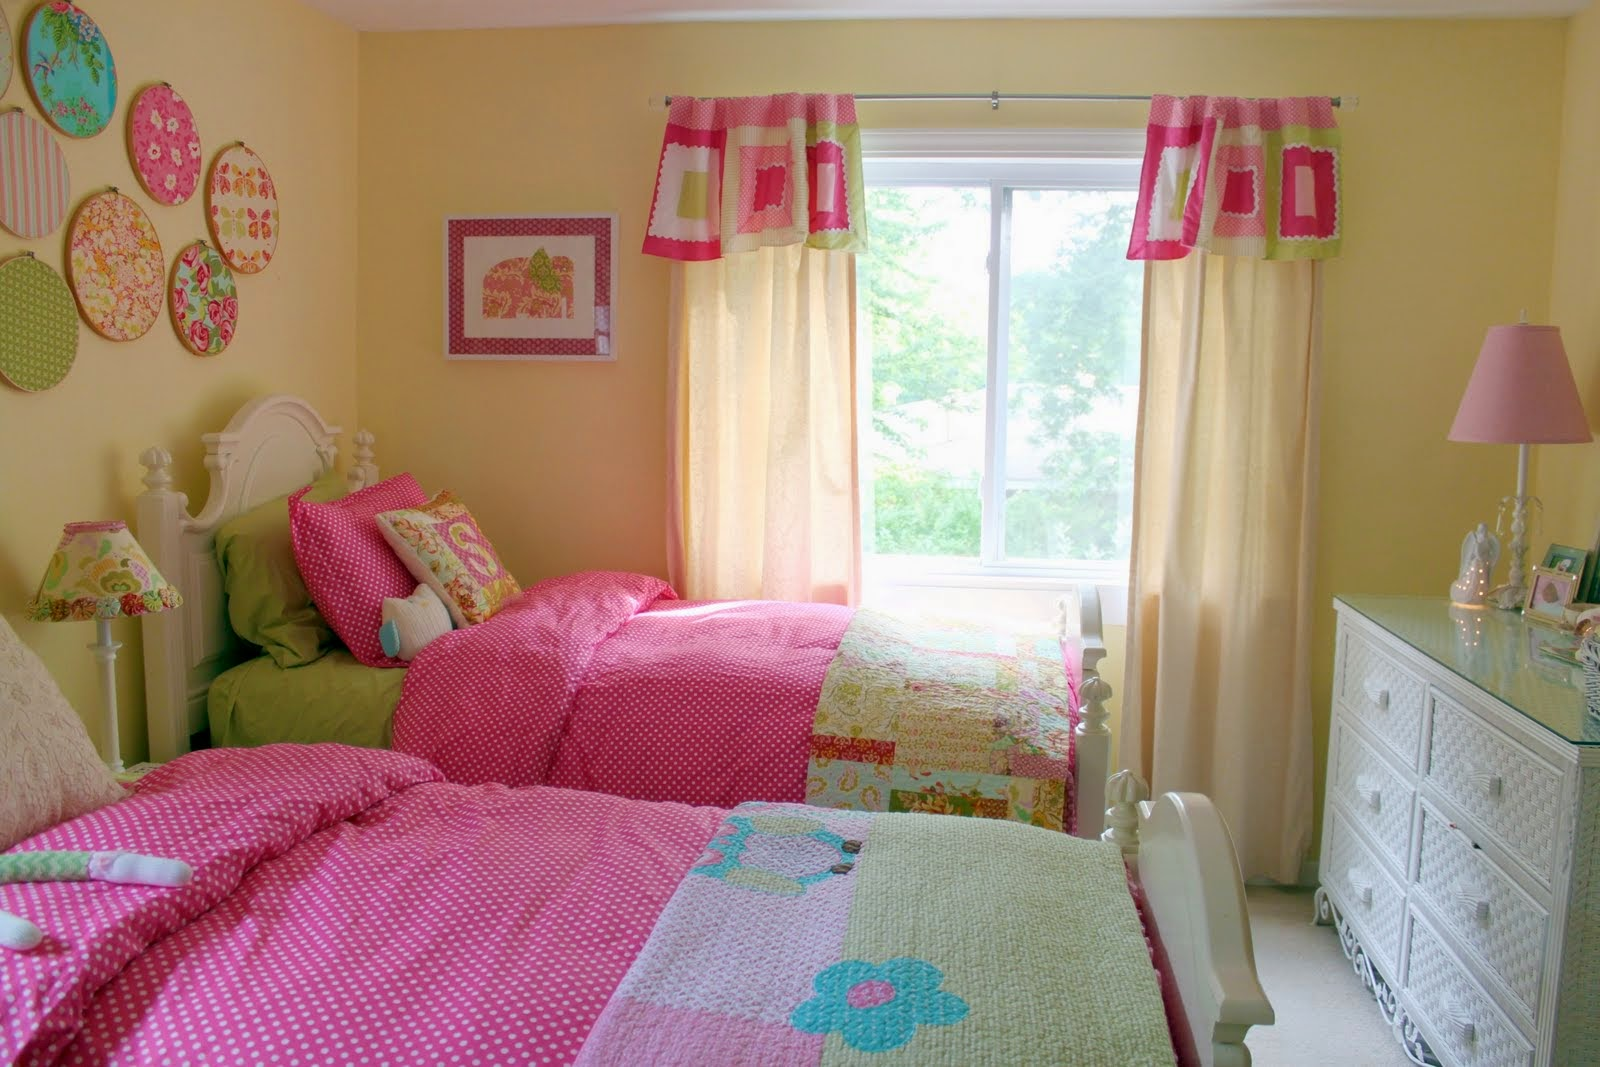 Shared Bedroom Shared Bedroom For Girl And Boy Creativity Design Fashion And Life